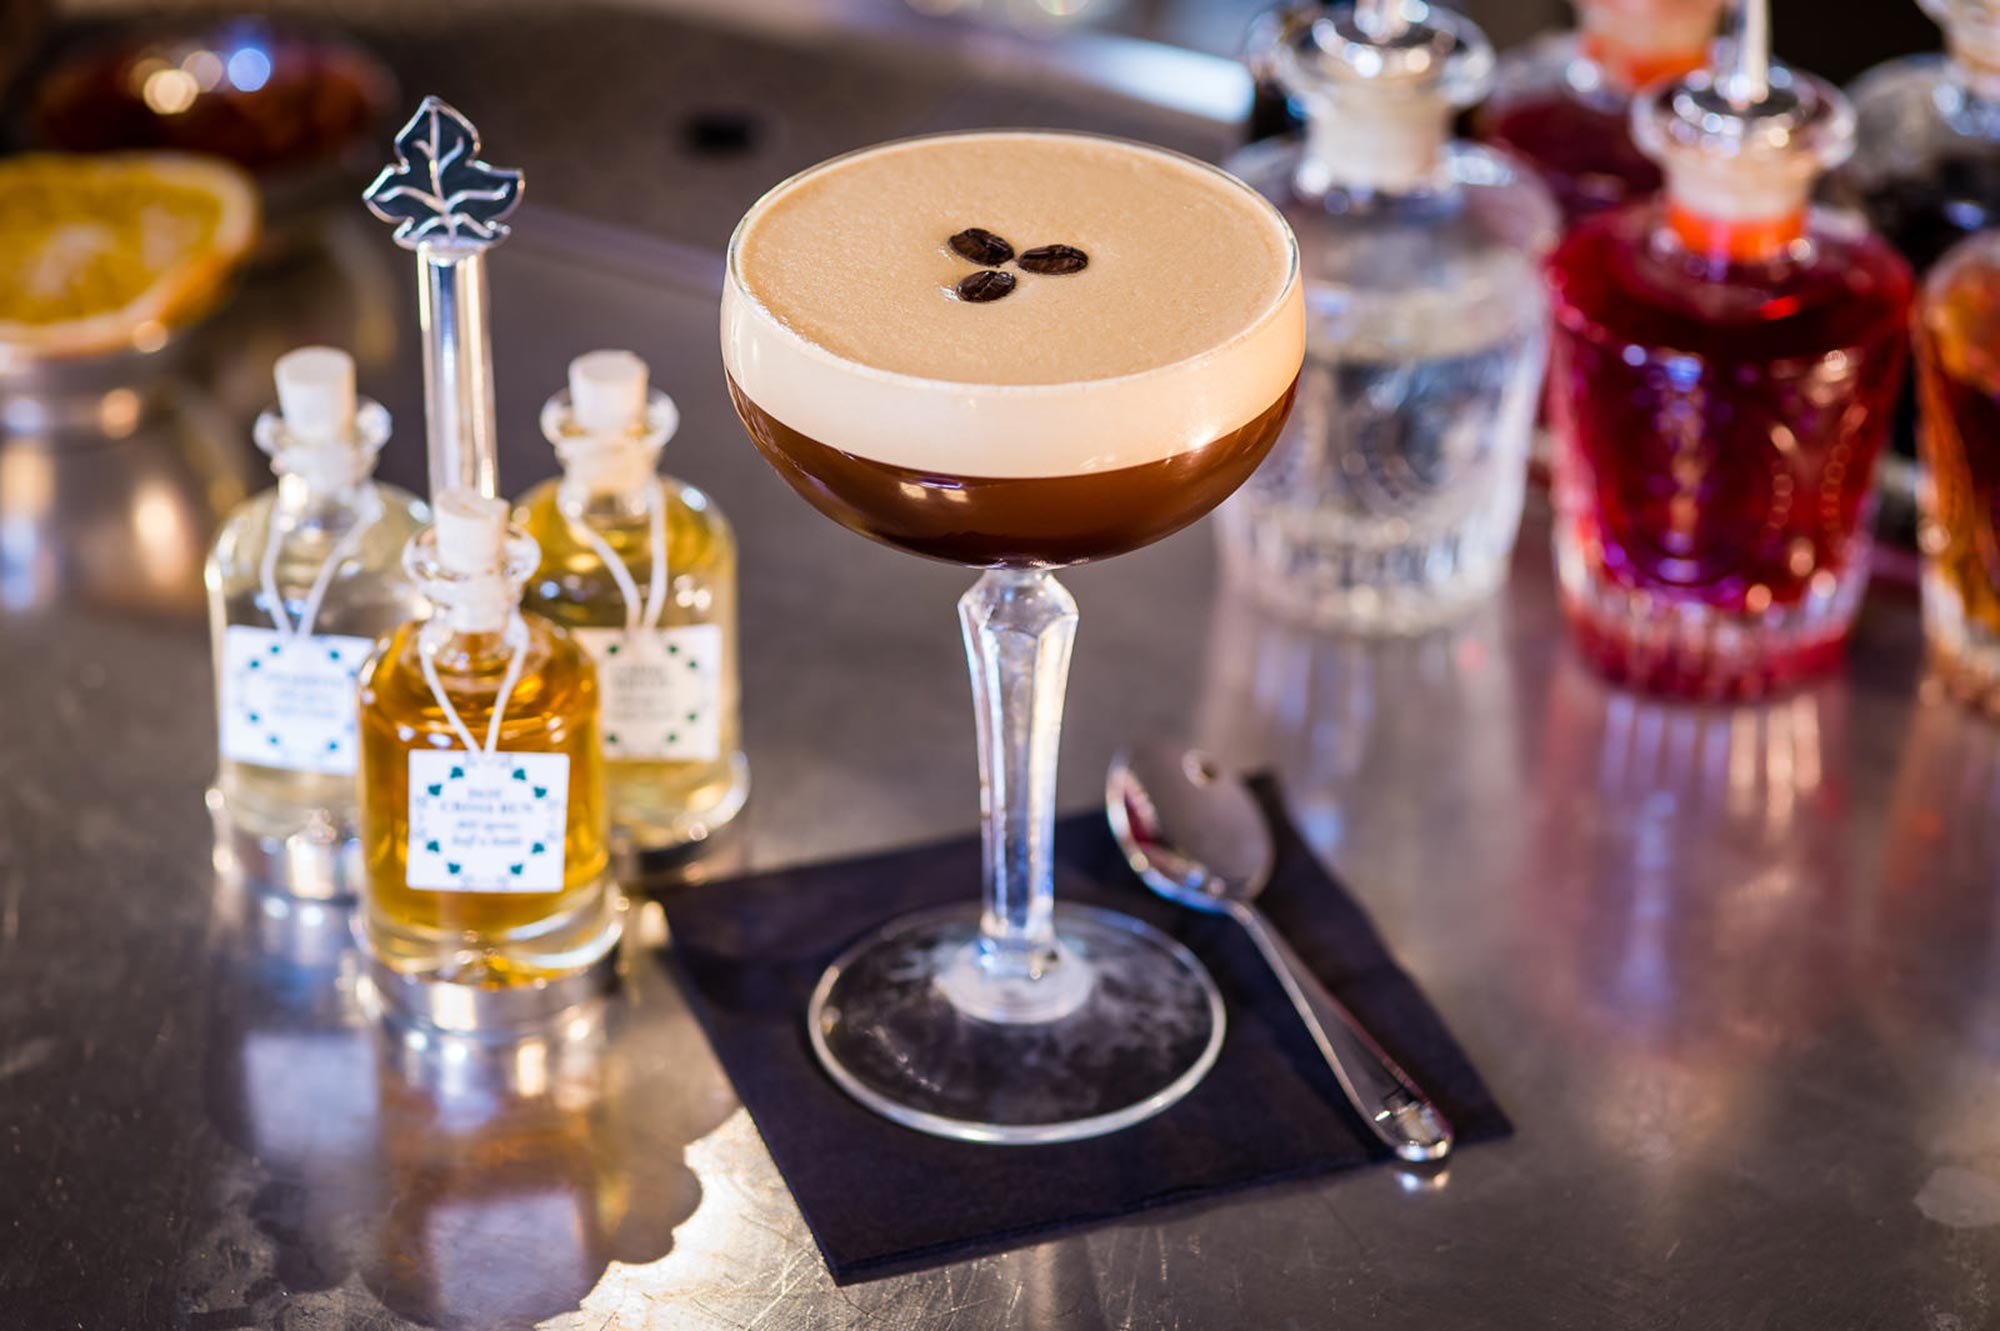 The Ivy Marlow Garden - The Ivy Collection Espresso Martini and Infusions - The Ivy Marlow Garden